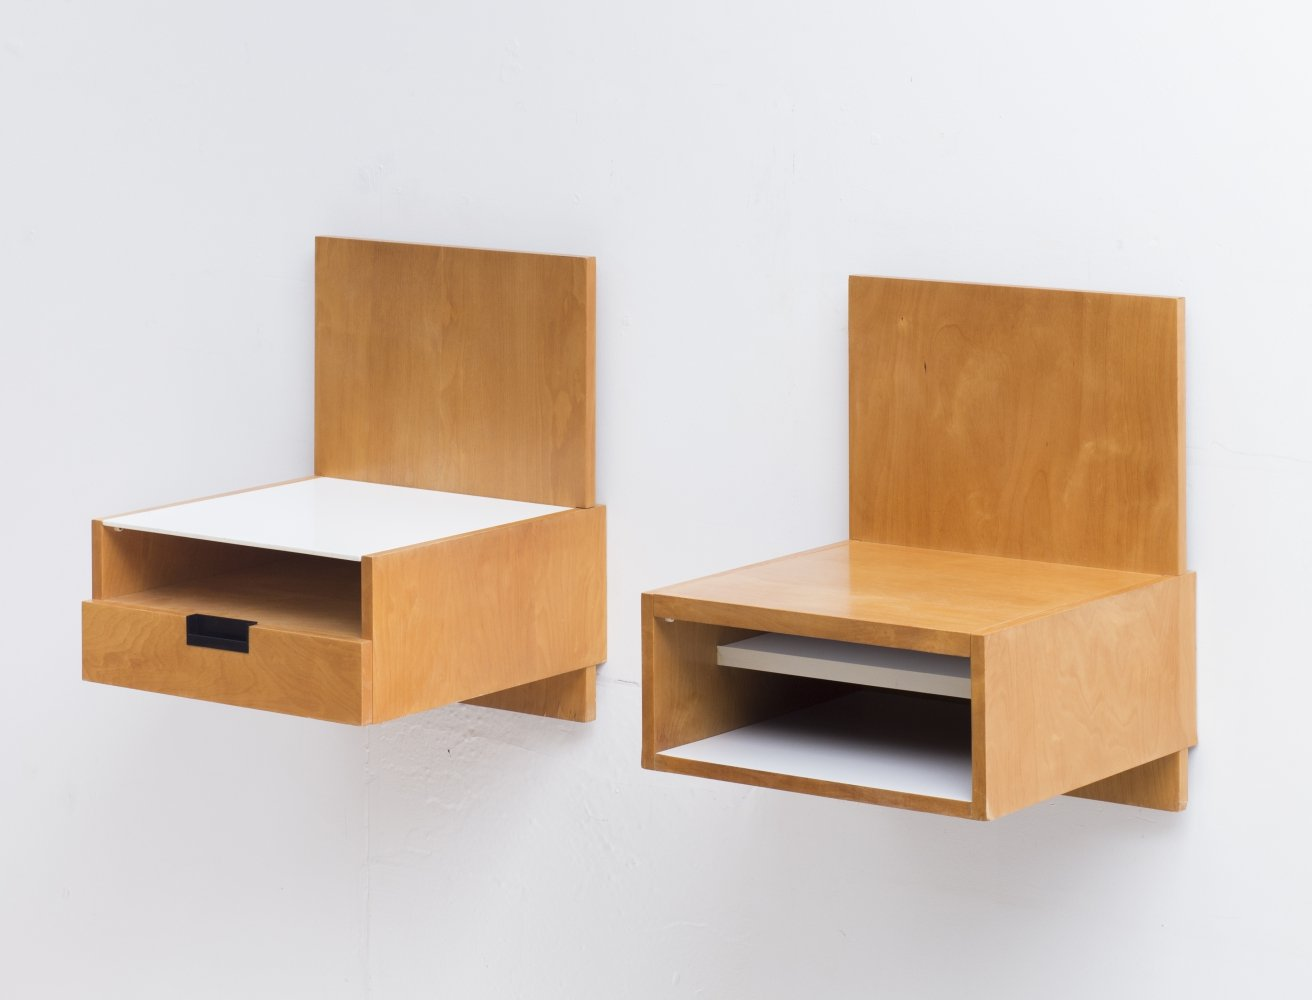 Set of night stands by Cees Braakman for Pastoe, 1960